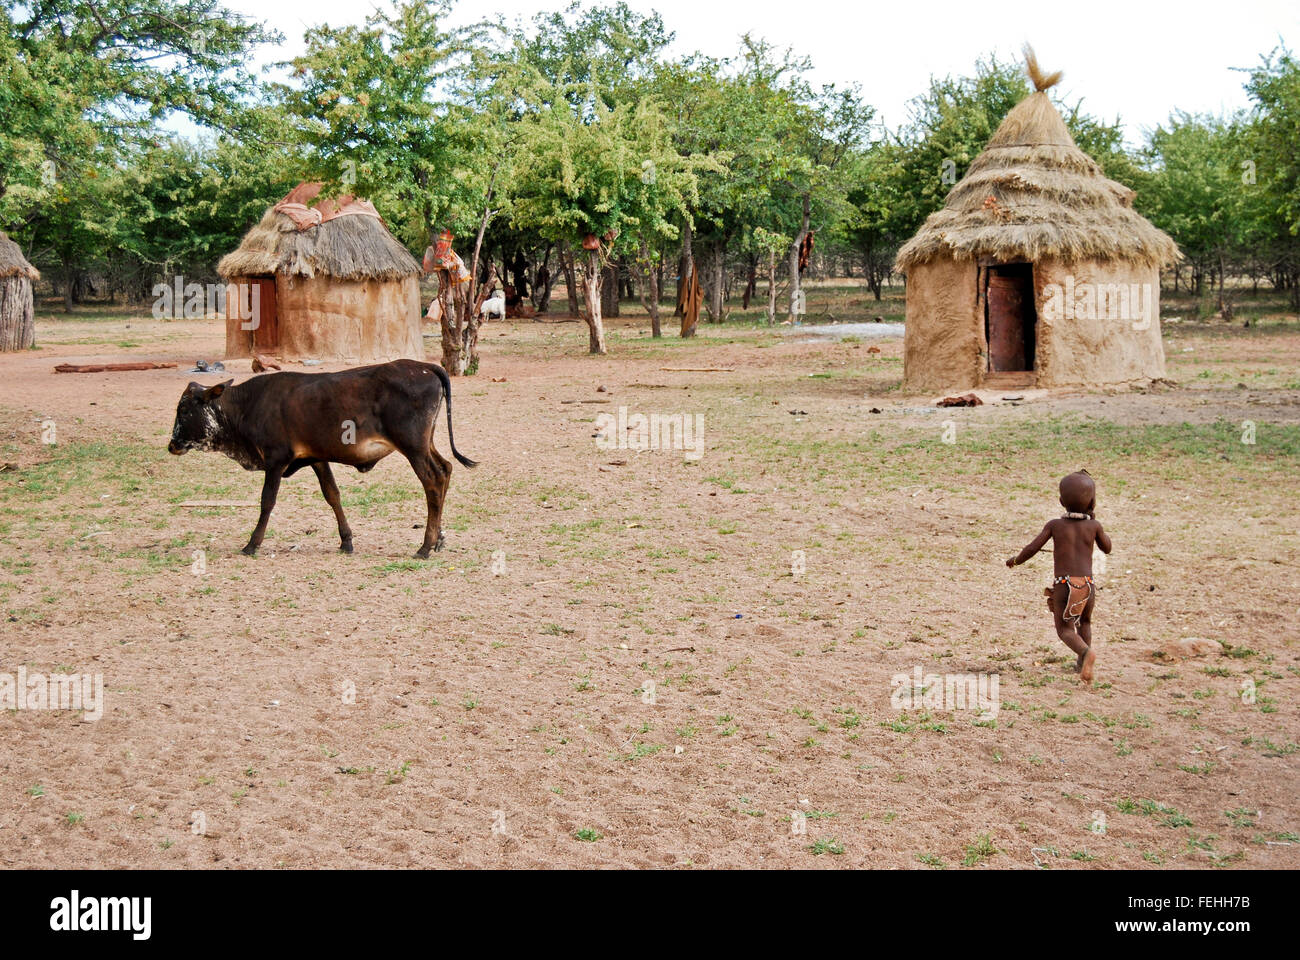 Himba village with traditional hut near Etosha National Park in Namibia, Africa - Stock Image